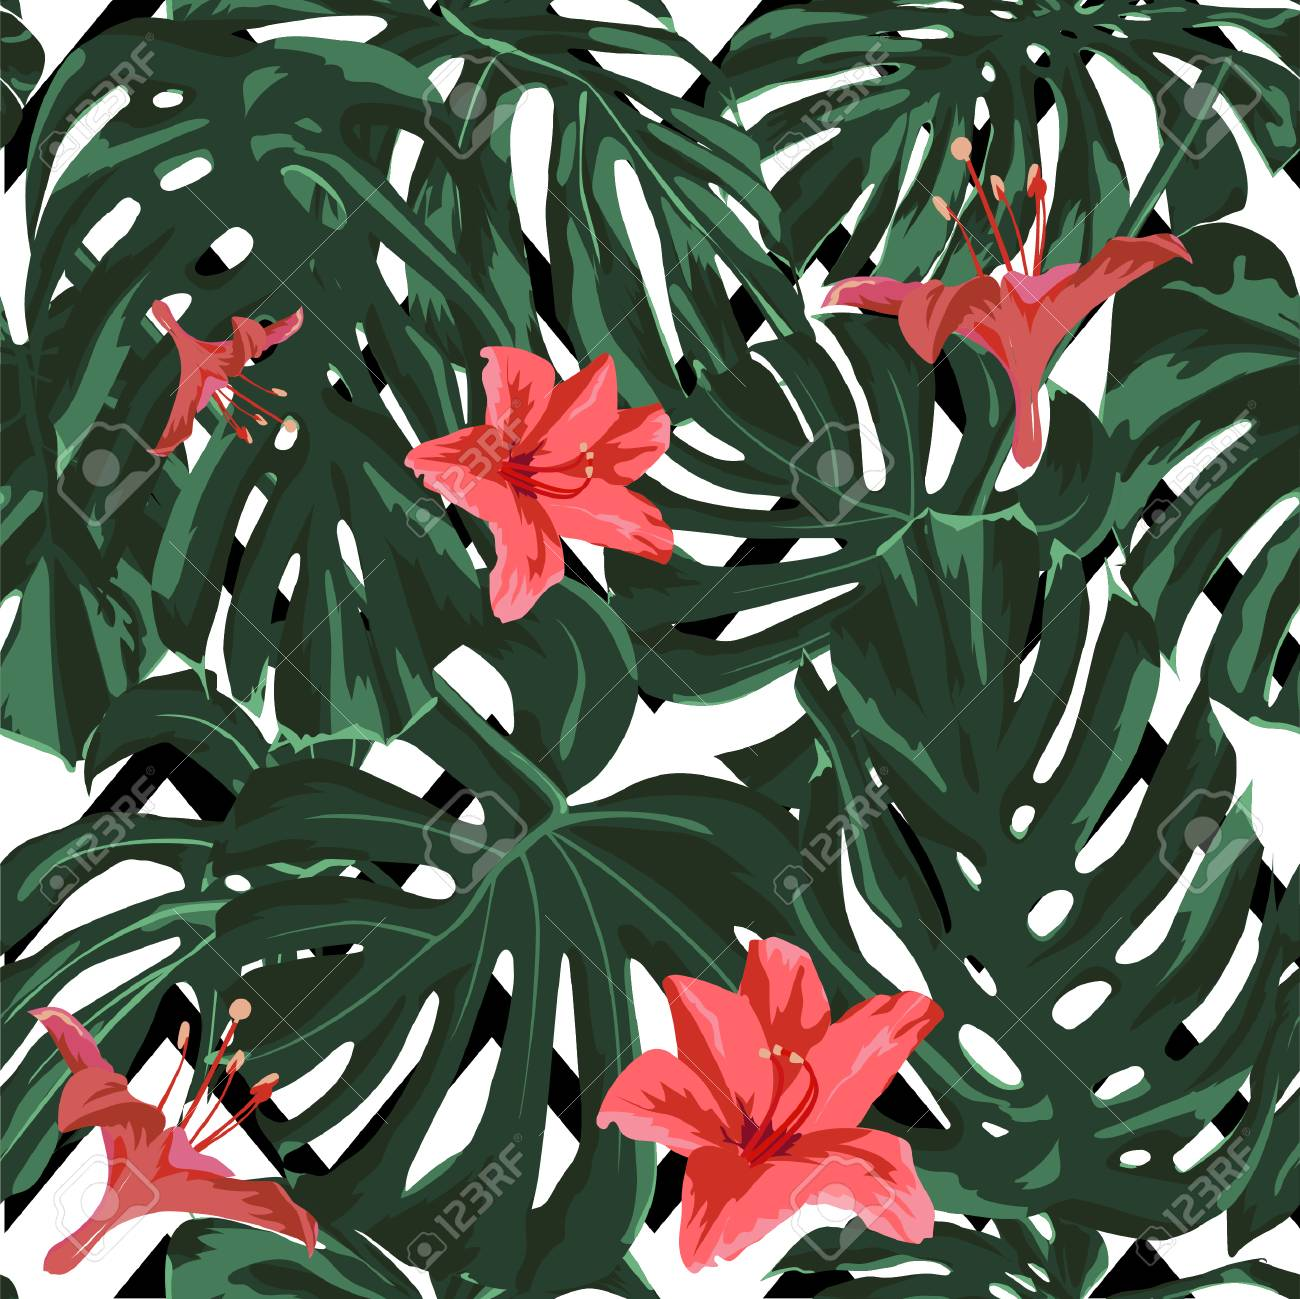 Tropical Print Jungle Seamless Pattern Vector Illustration Of Tropical Leaves And Flowers Background Texture Wrapping Paper Textile Fabric Or